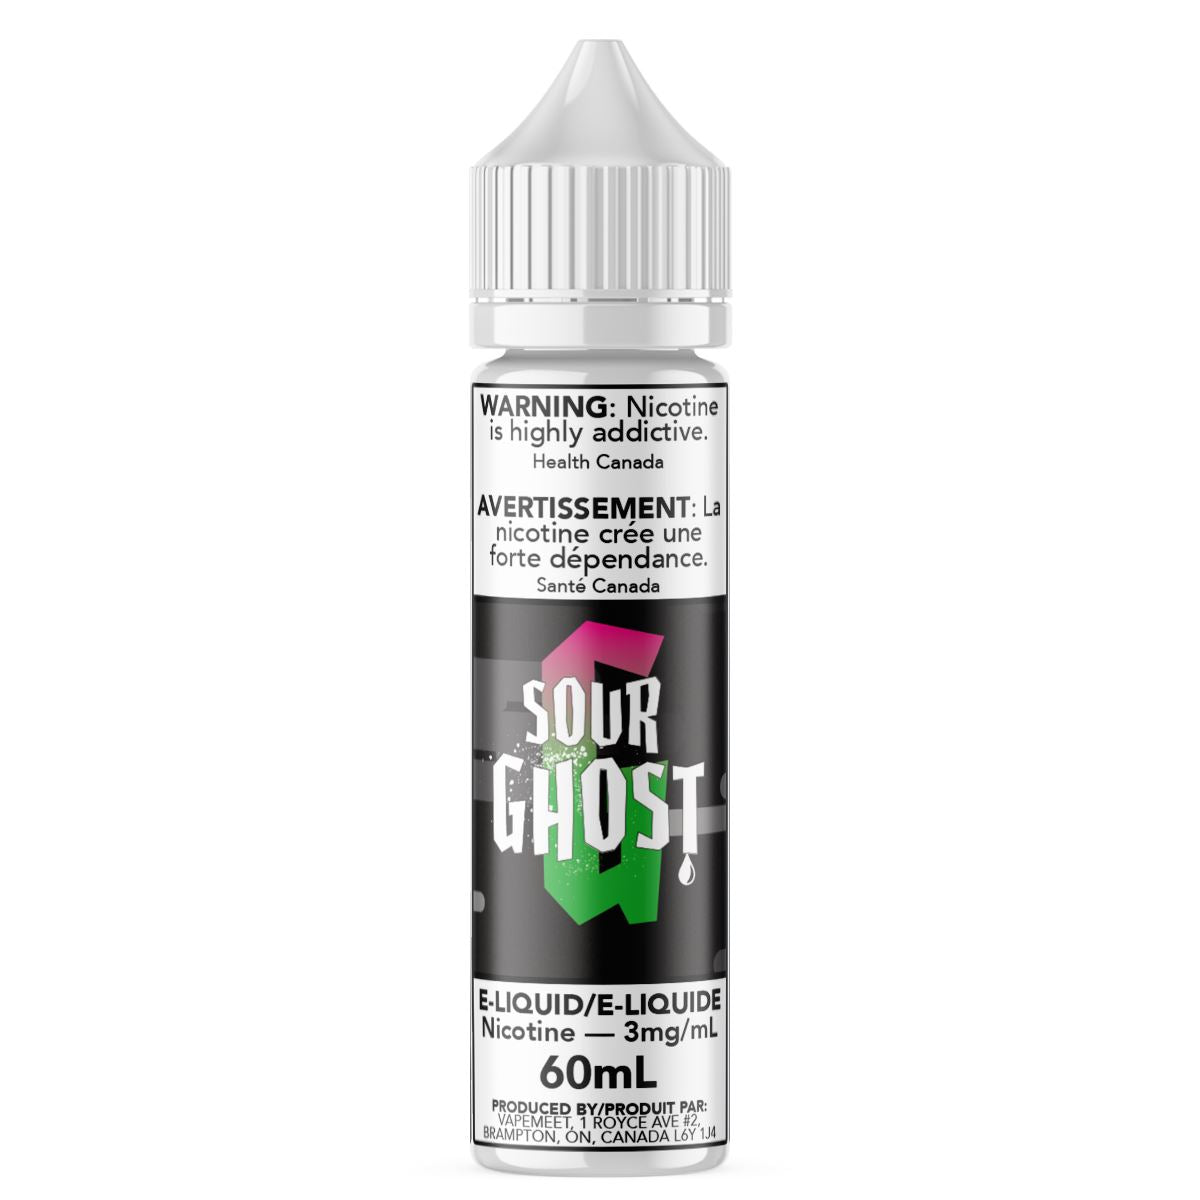 Ghosted - Sour Ghost E-Liquid Ghosted 60mL 0 mg/mL